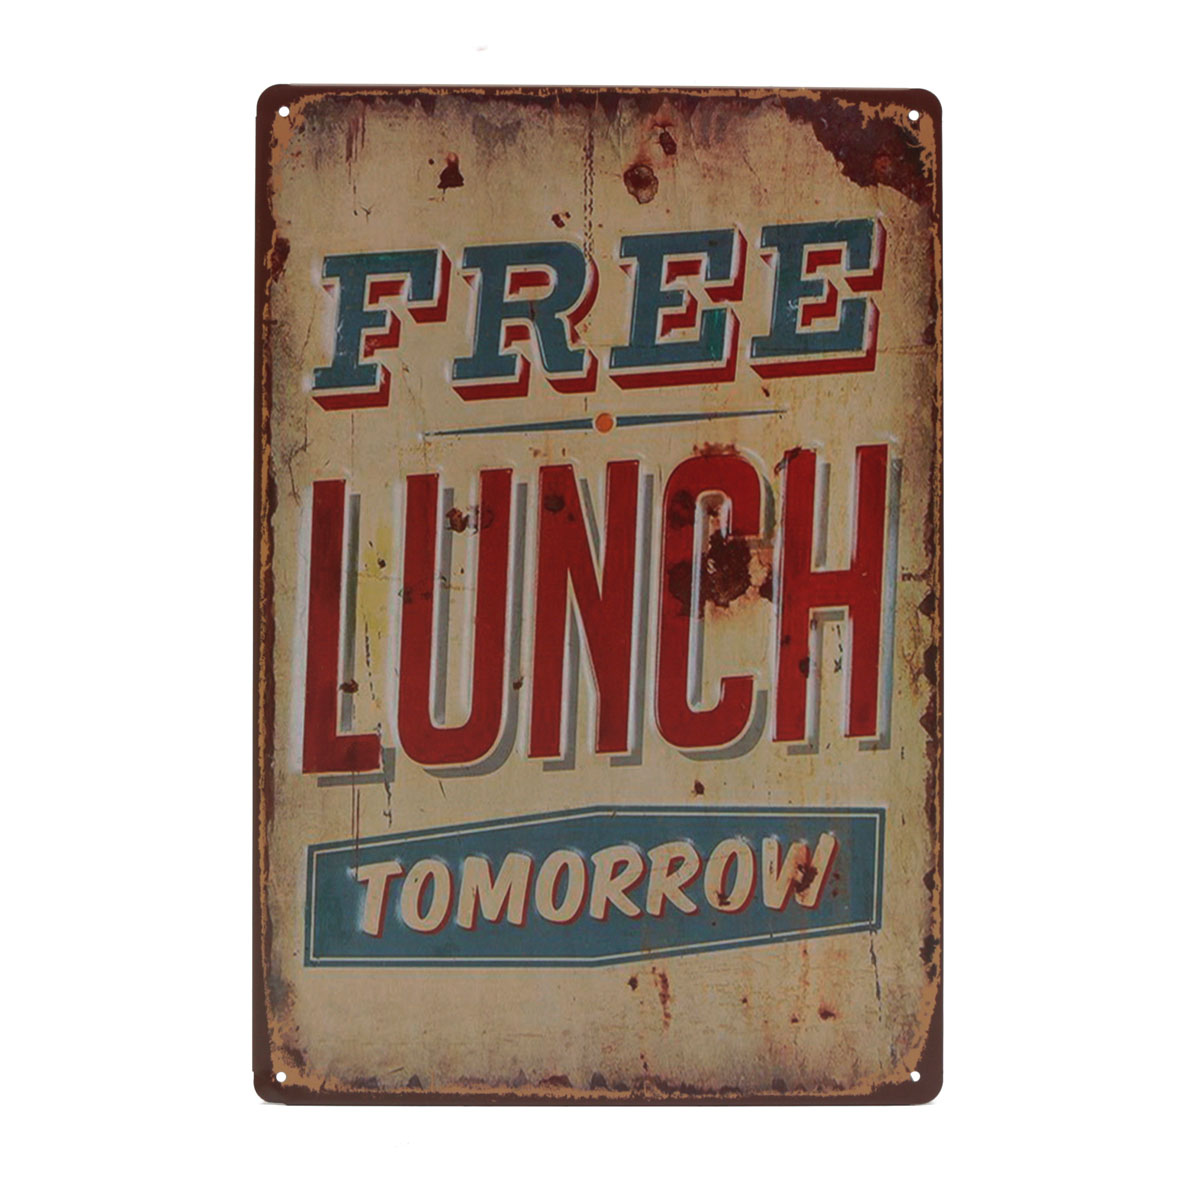 20x30cm retro metal tin sign plaque food wall poster wall decor bar pub home uk ebay. Black Bedroom Furniture Sets. Home Design Ideas